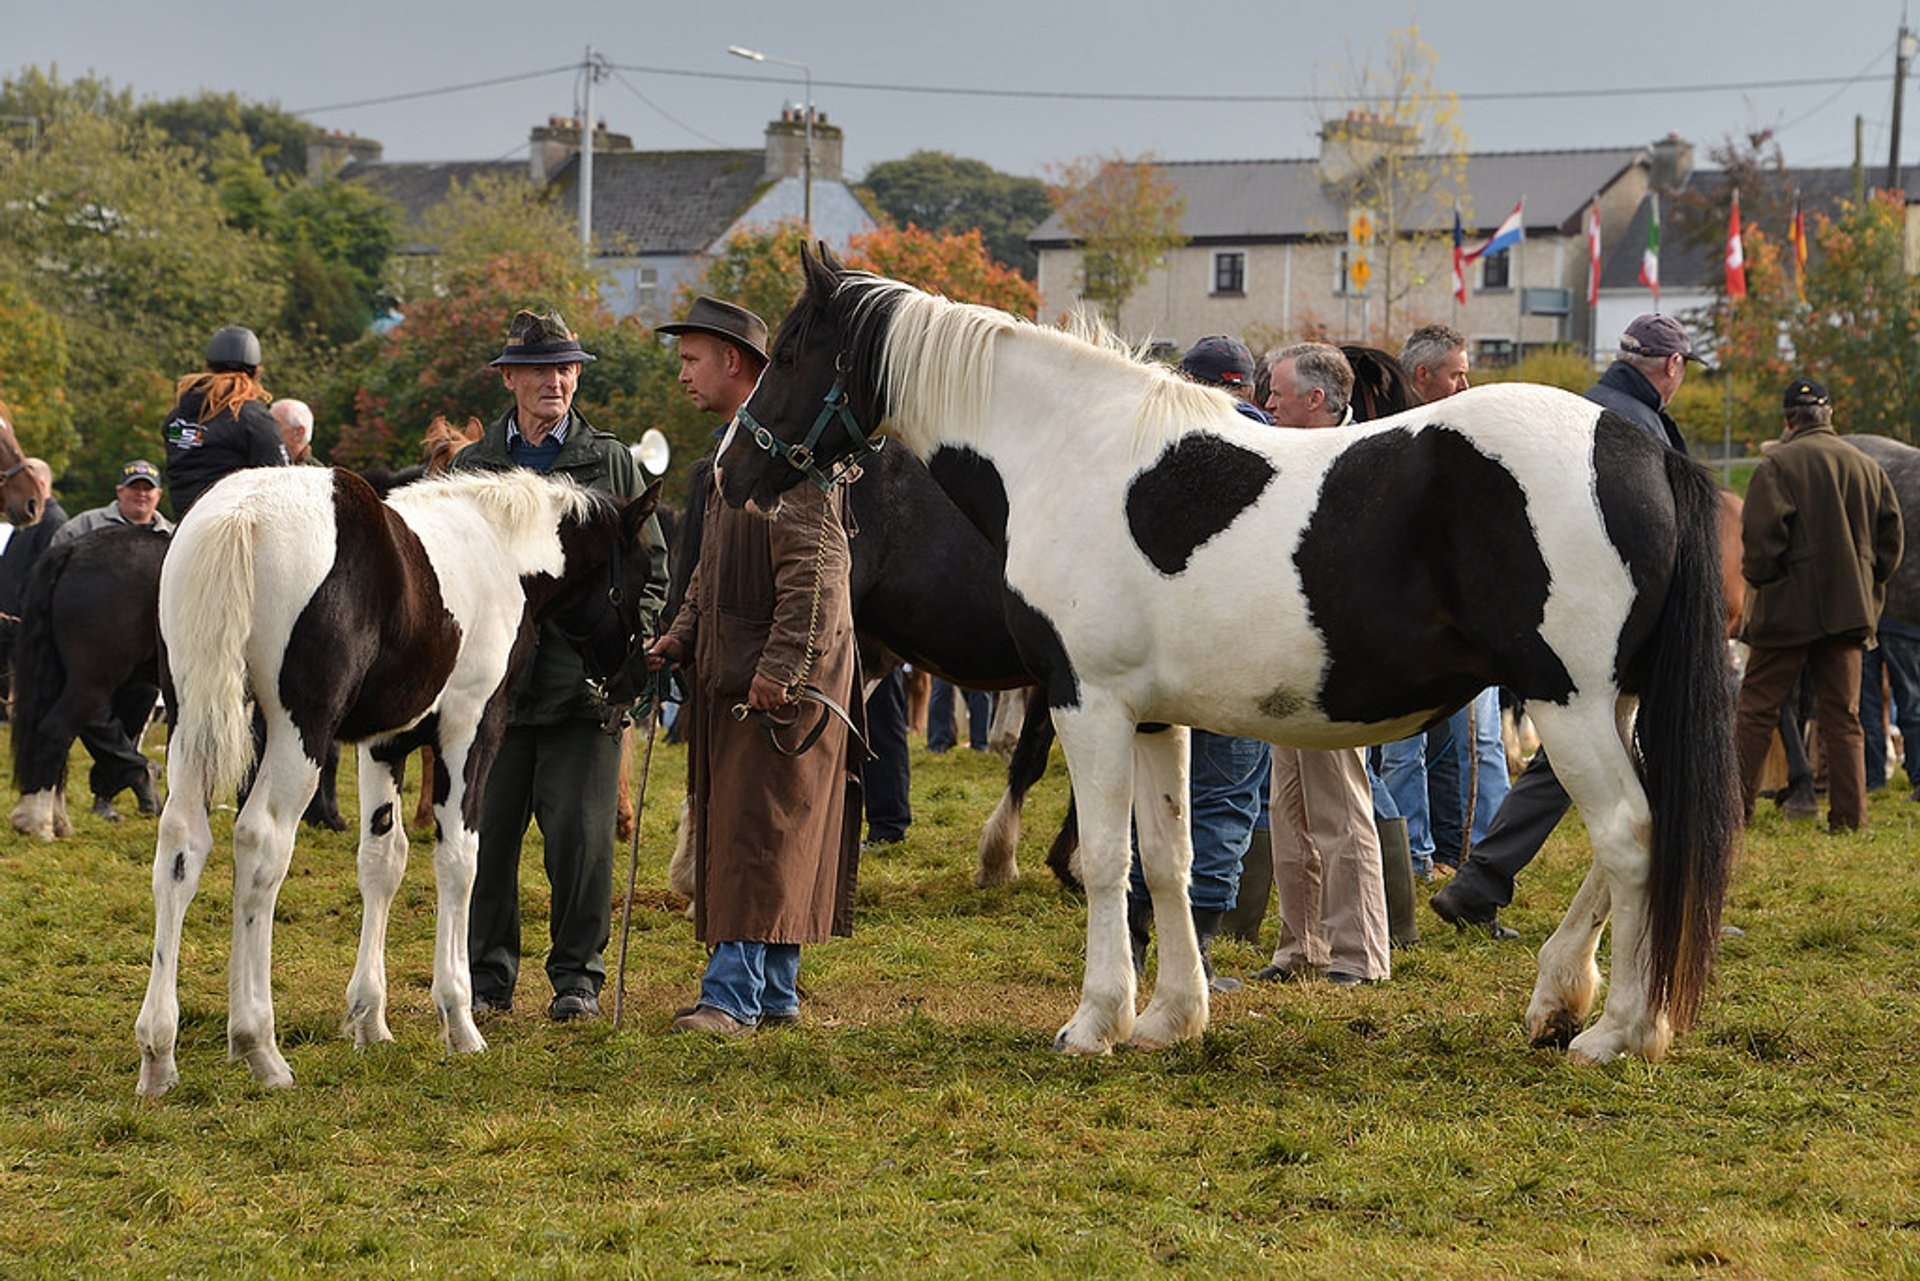 Ballinasloe Horse Fair in Ireland 2020 - Best Time